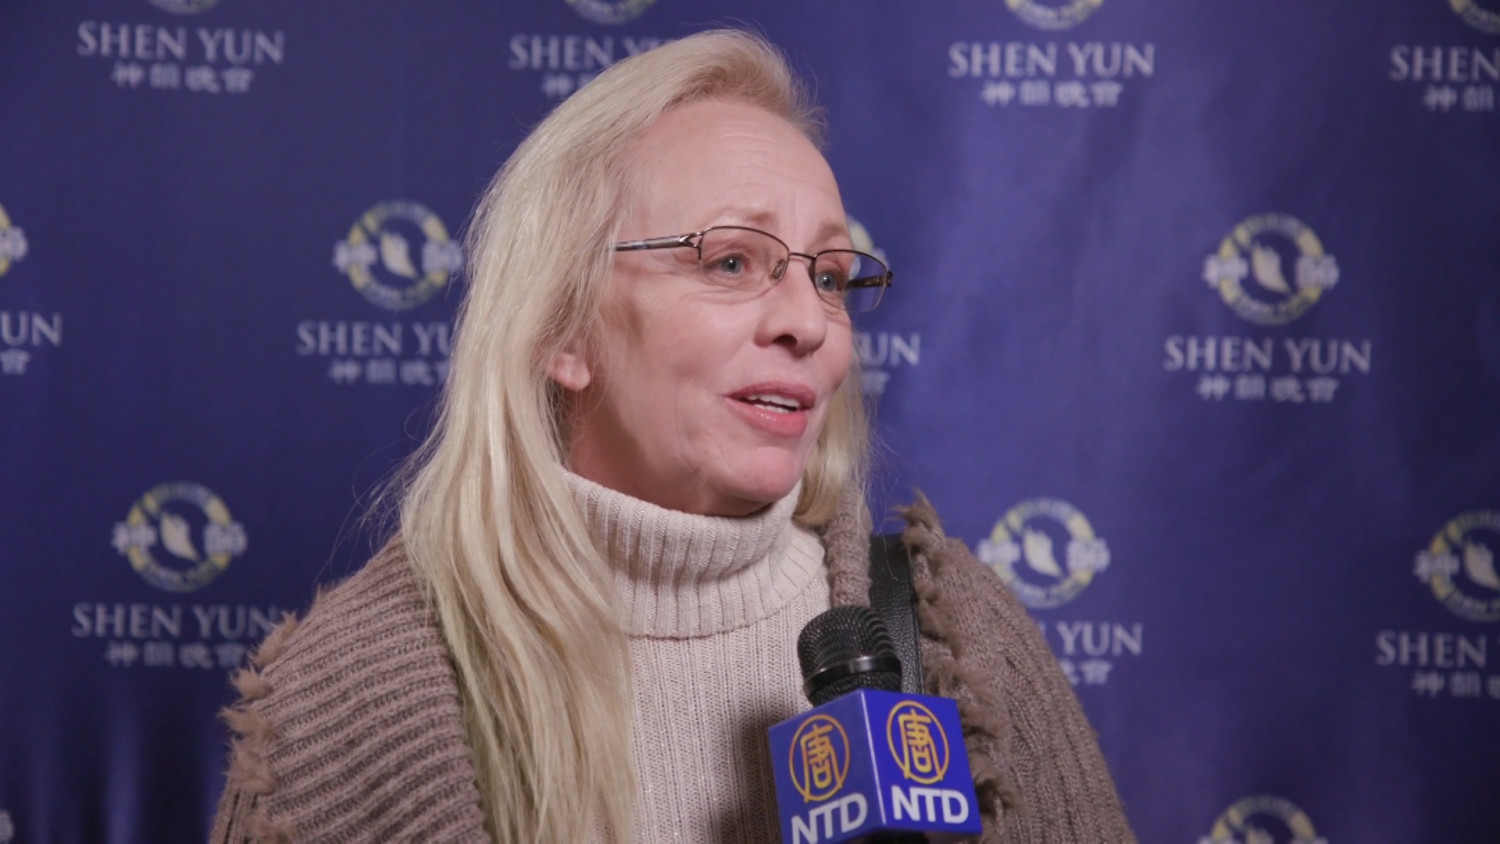 """Connecticut Audience Thrilled to See Shen Yun: """"I am in Heaven"""""""